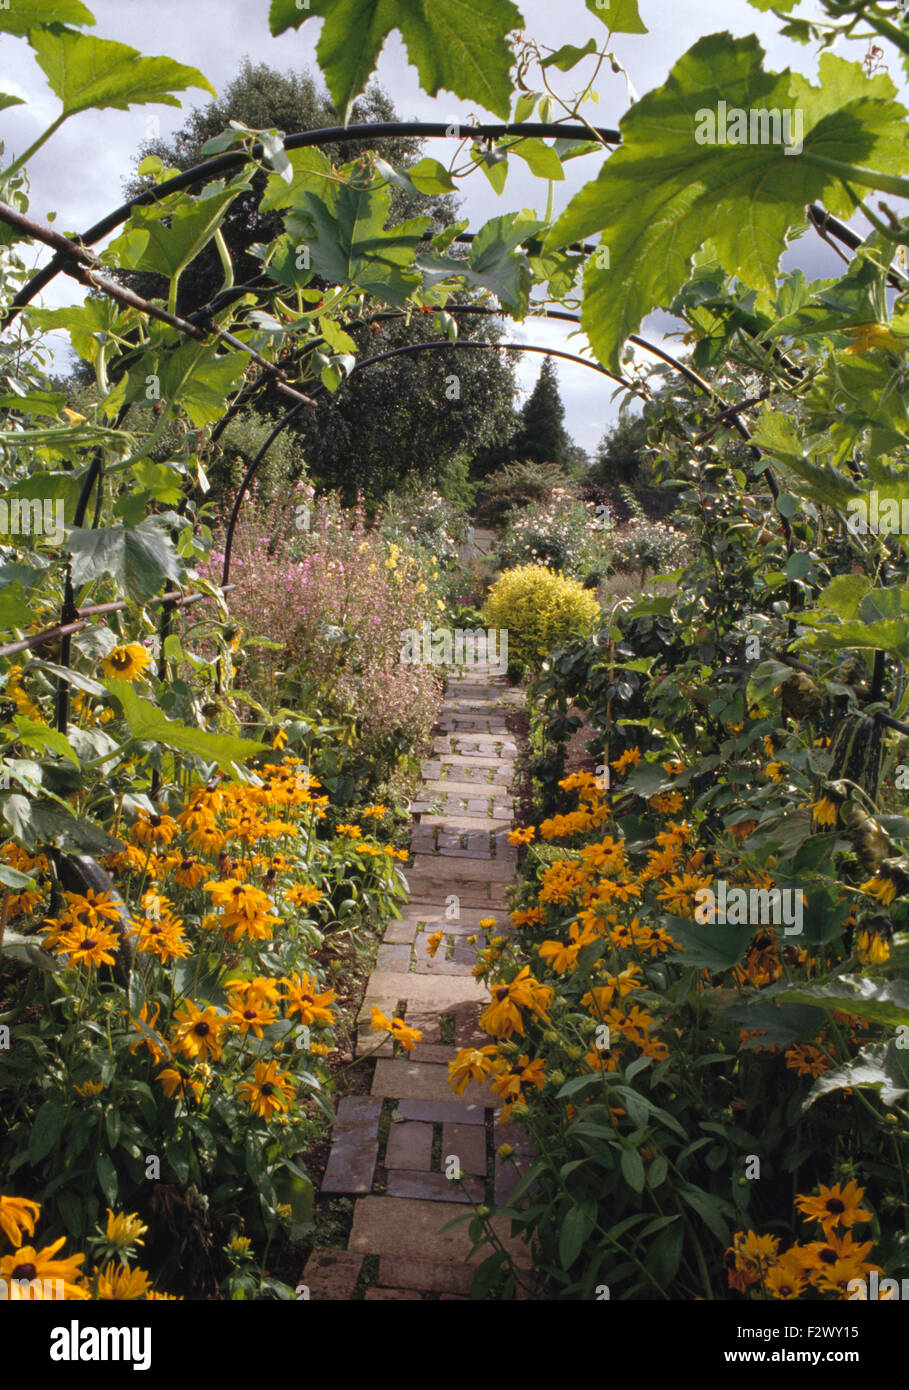 Bright yellow rudbeckia growing on either side of paved path through ...